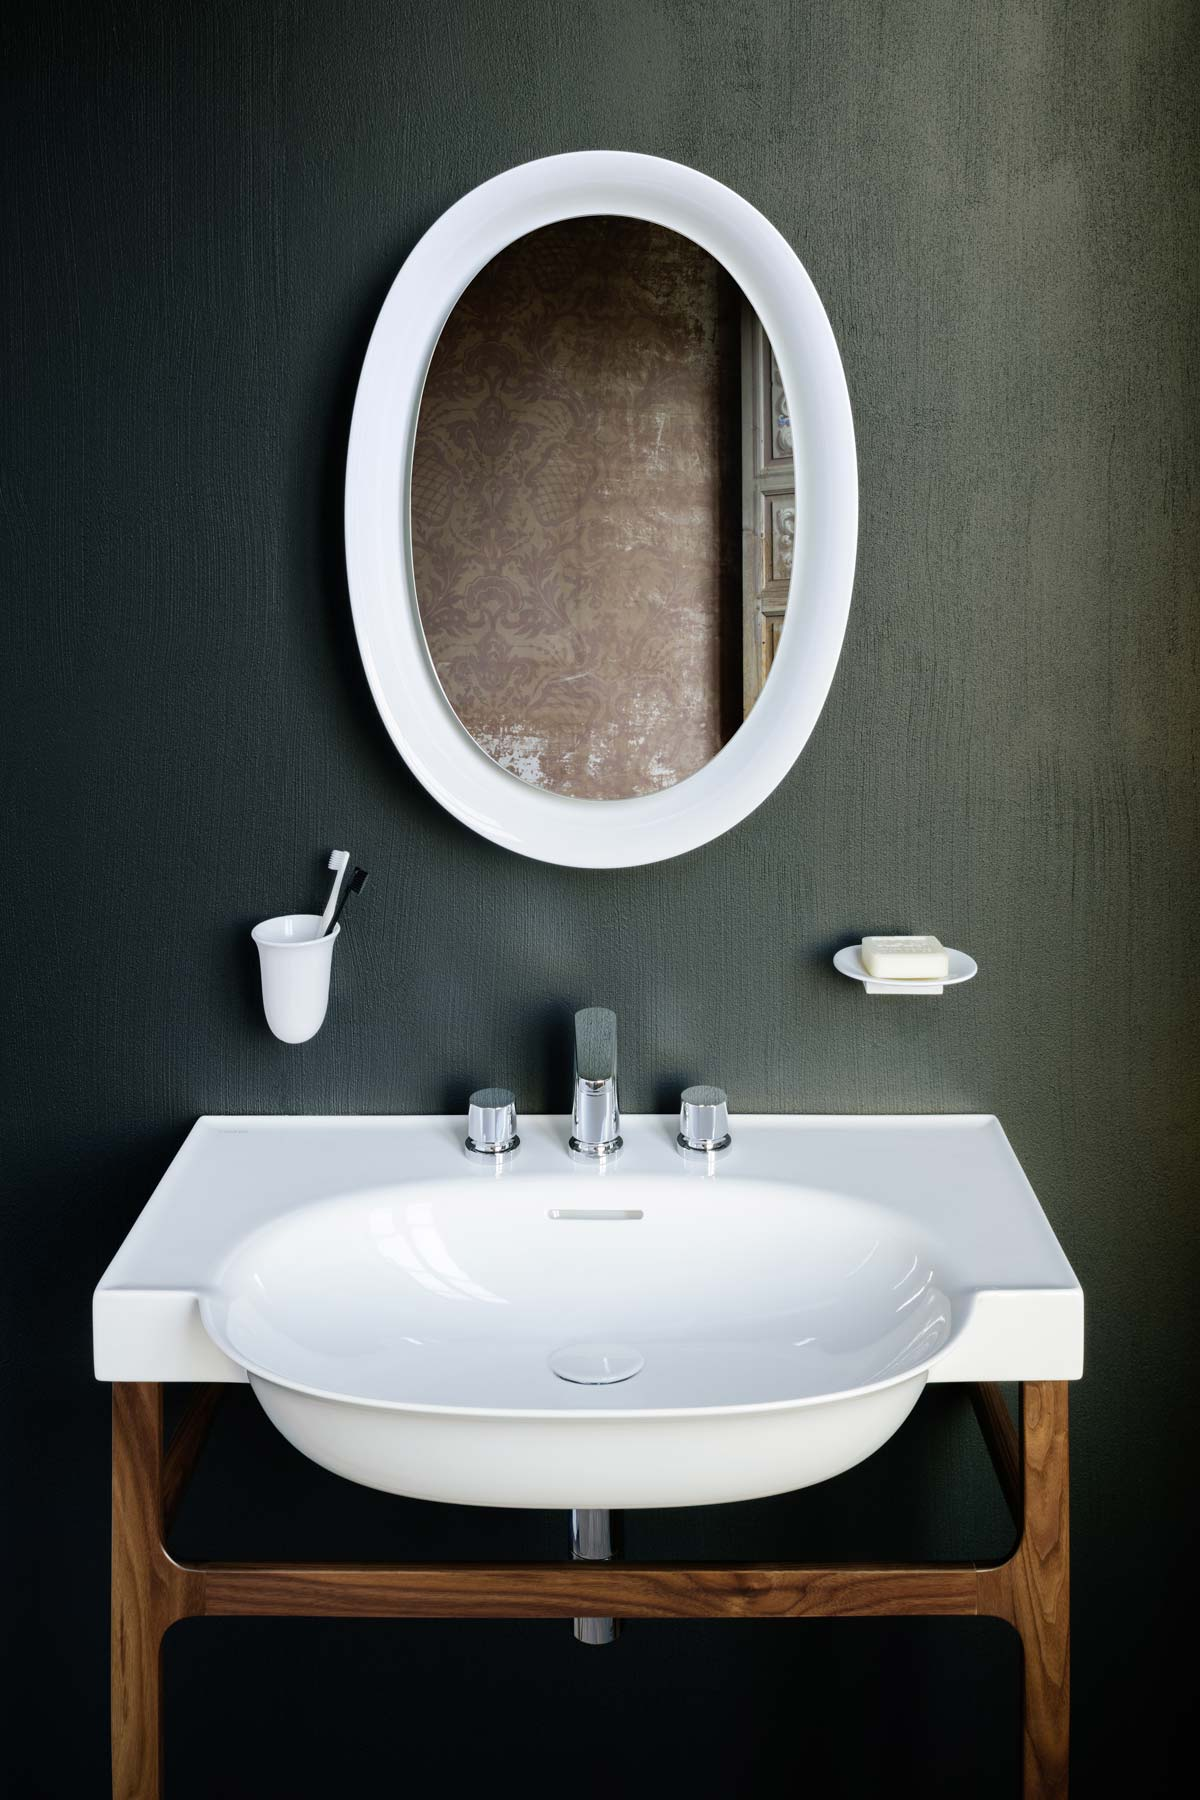 The New Classic by Marcel Wanders, Laufen